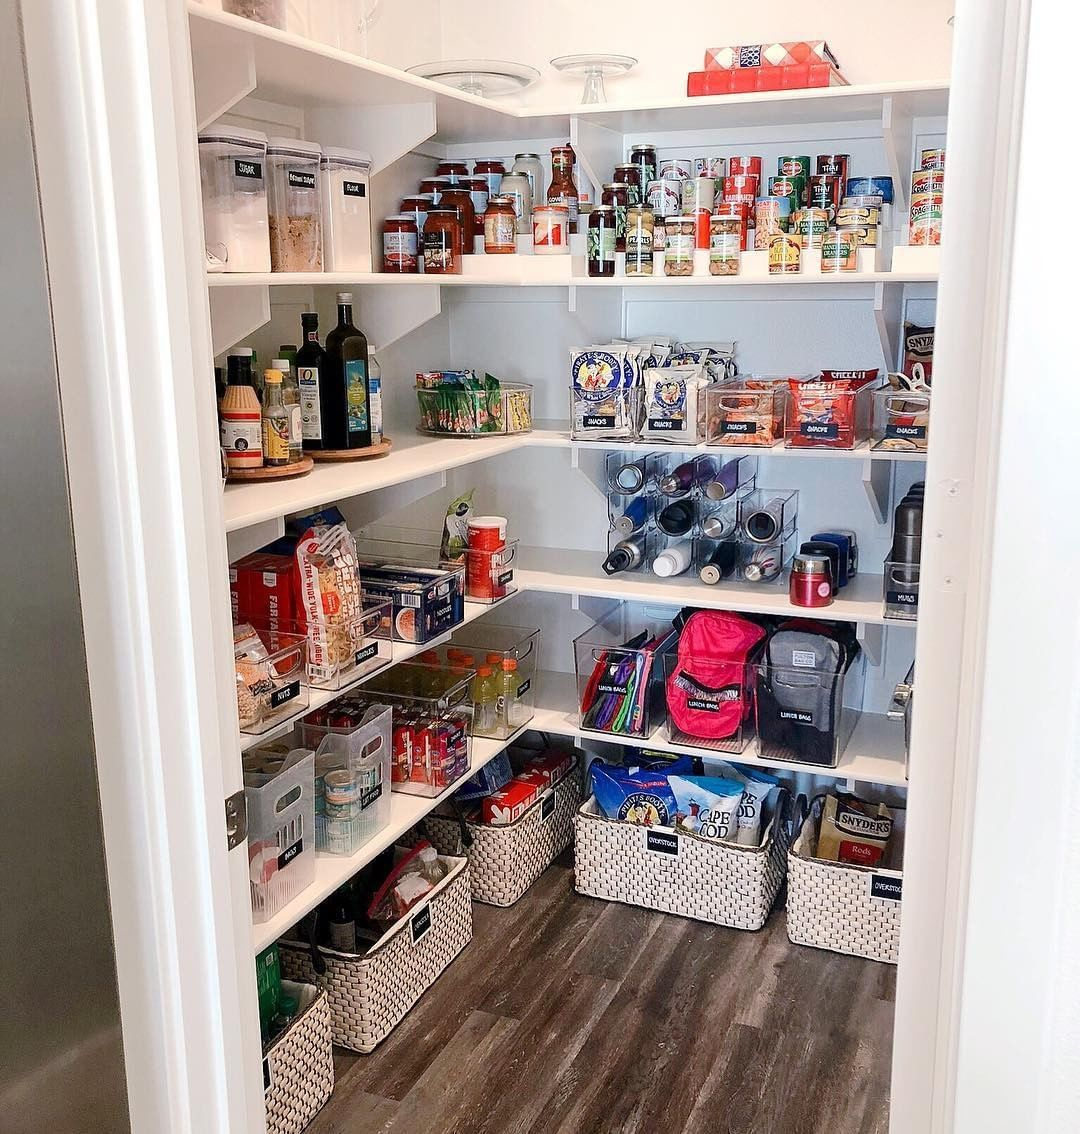 A Multipurpose Pantry Is The Best Kind Of Pantry We Riorganize S Use Of Space To Inclu Home Storage Solutions Kitchen Hacks Organization Apartment Room